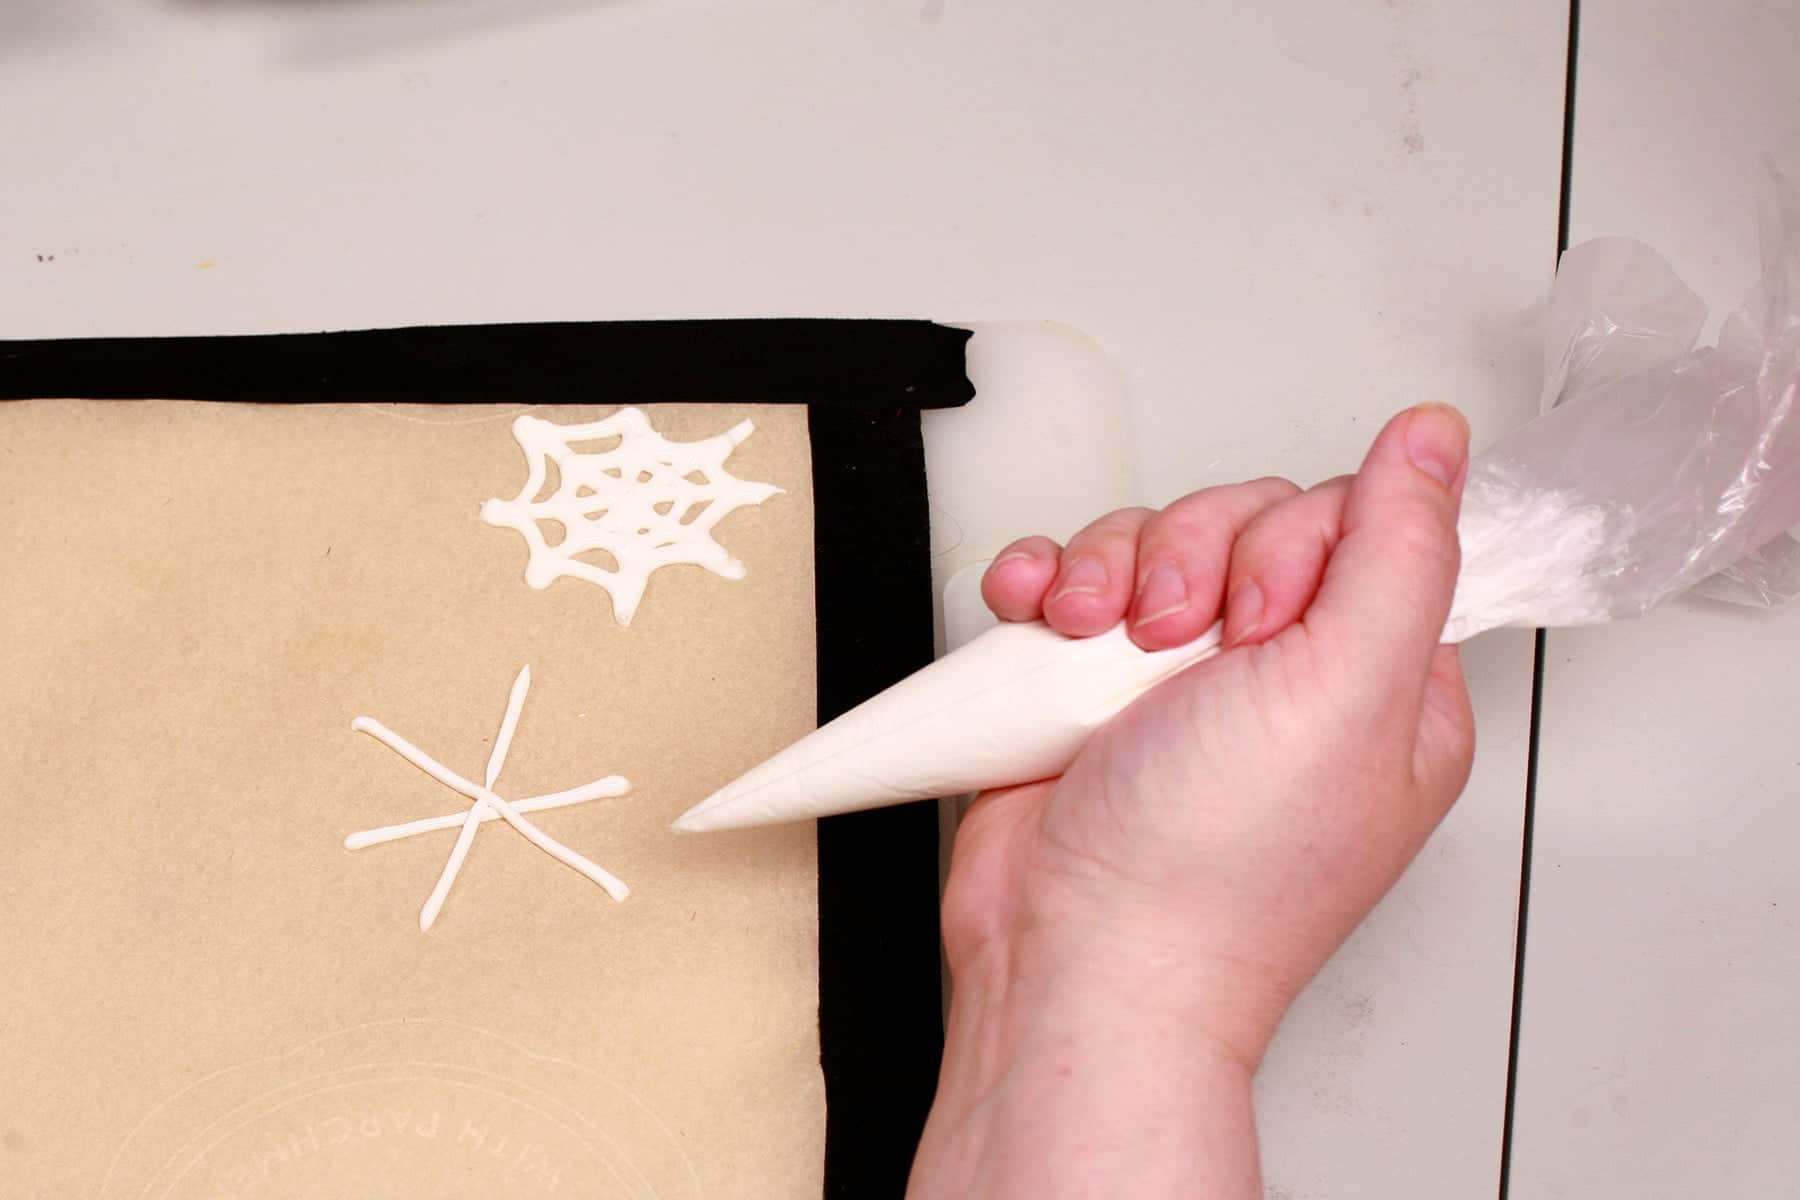 A hand uses a pastry bag full of white royal icing to pipe spider webs on a parchment lined baking sheet.